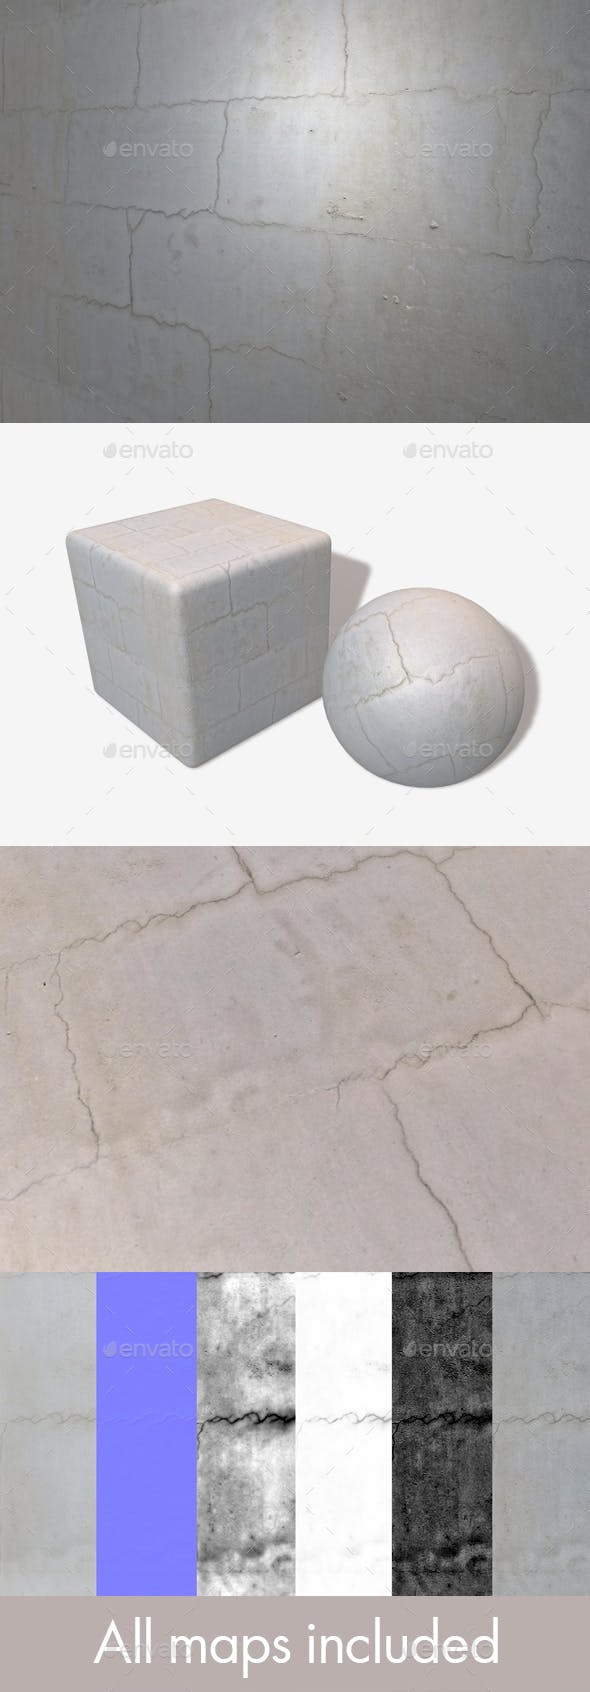 Cracked Plaster Wall Seamless Texture - 3DOcean Item for Sale